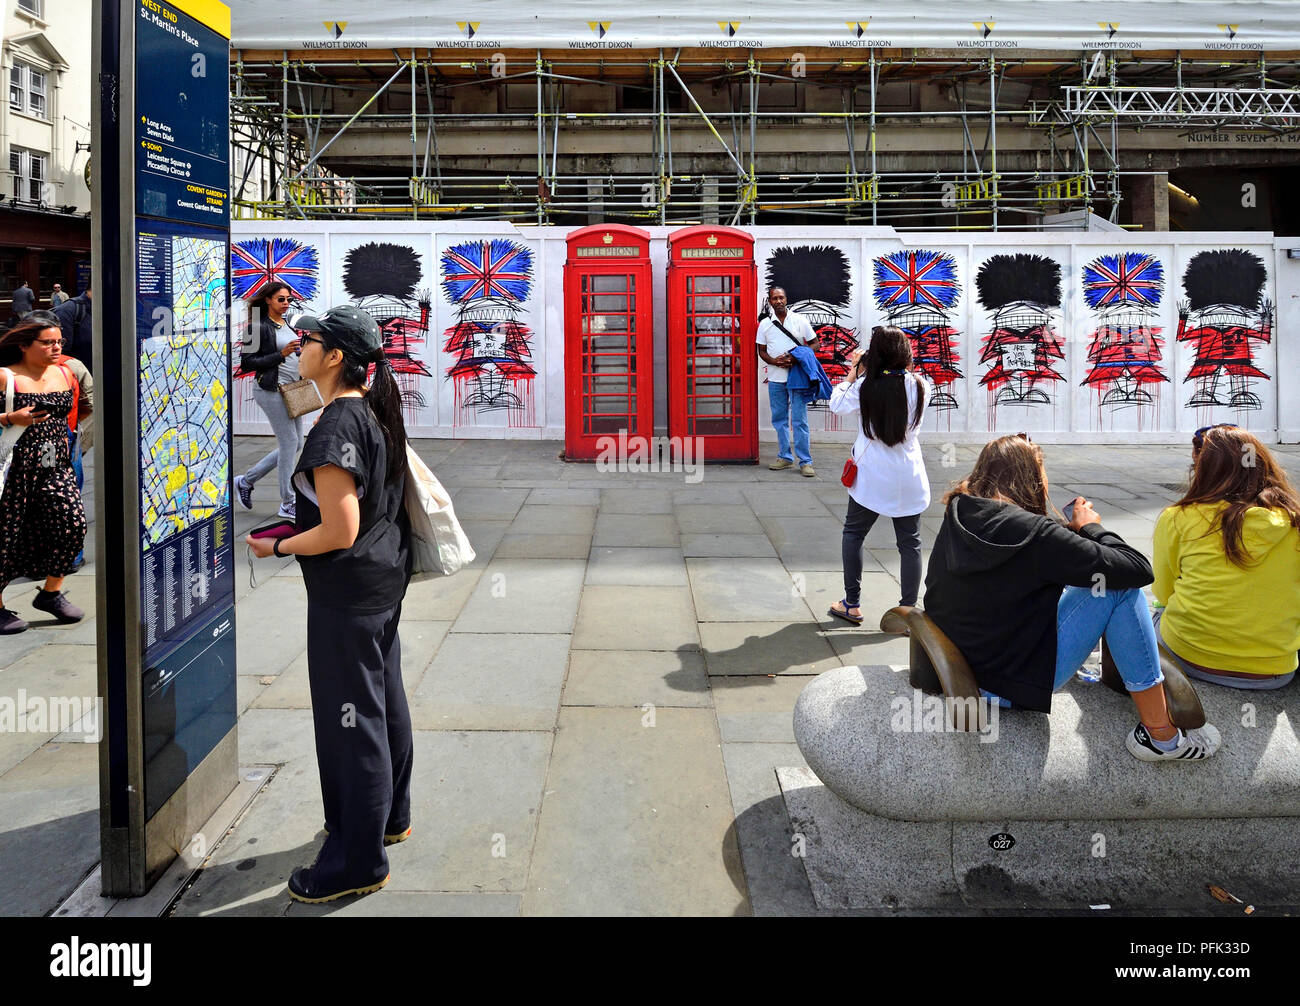 Tourists in St Martin's Place, London, England, UK. Traditional red telephone boxes and graffiti guardsmen by artist Nathan Bowendecorating constructi - Stock Image